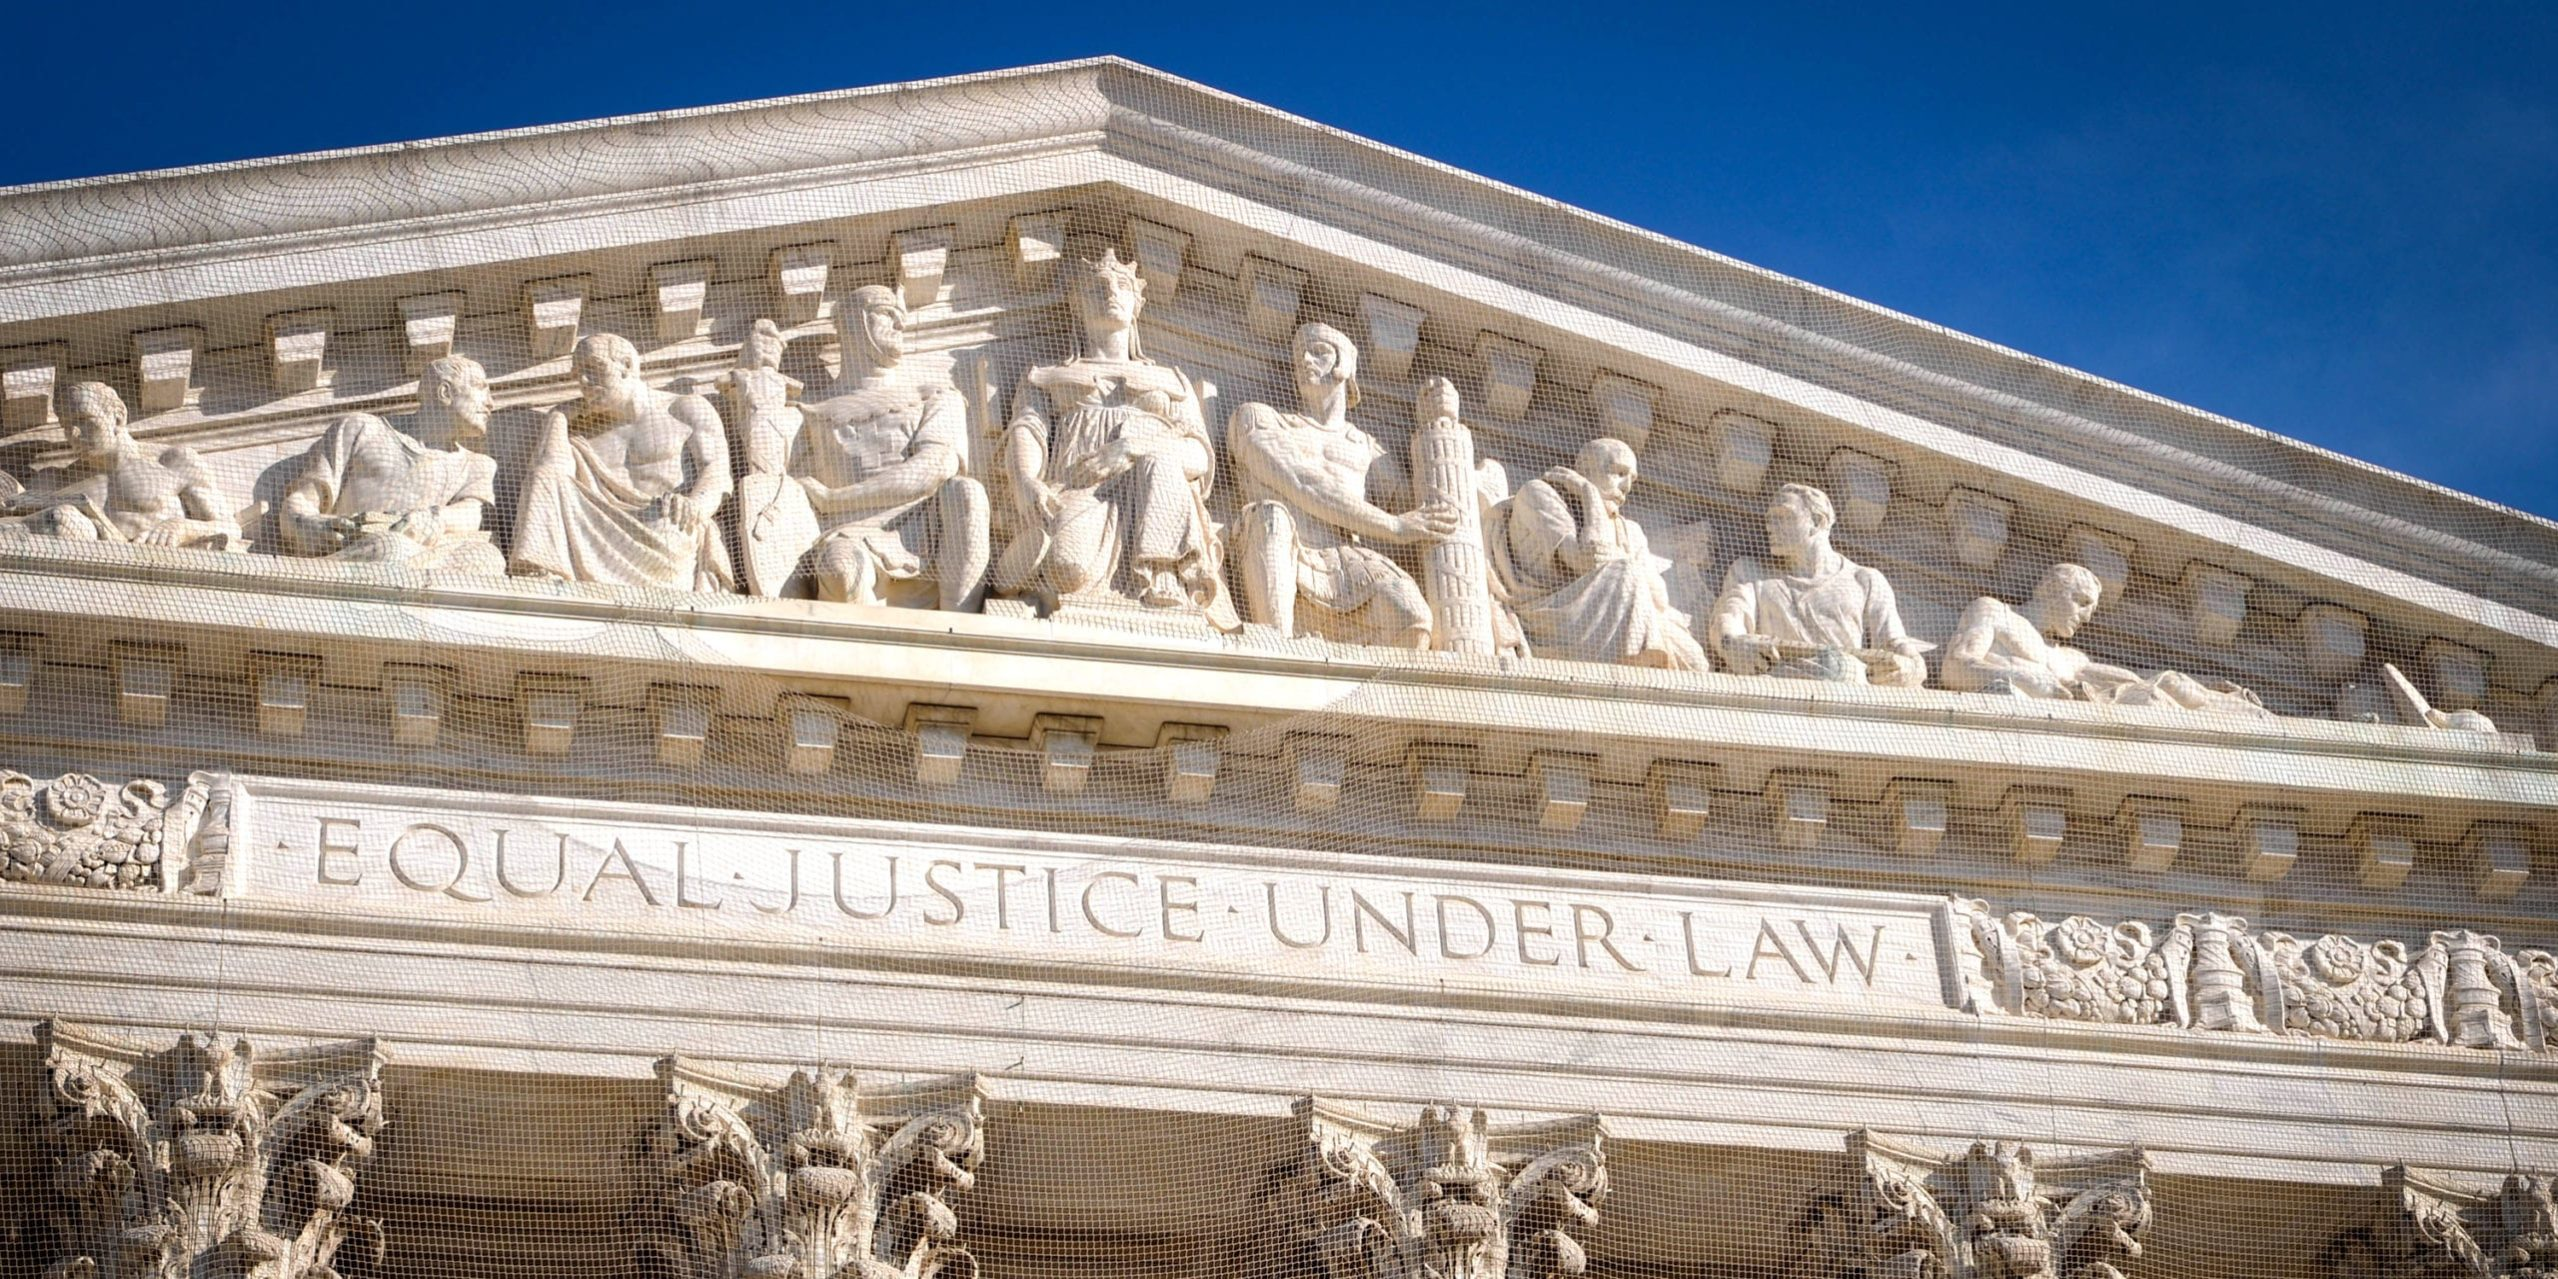 Equal Justice Under the Law inscription on the United States Supreme Court building.